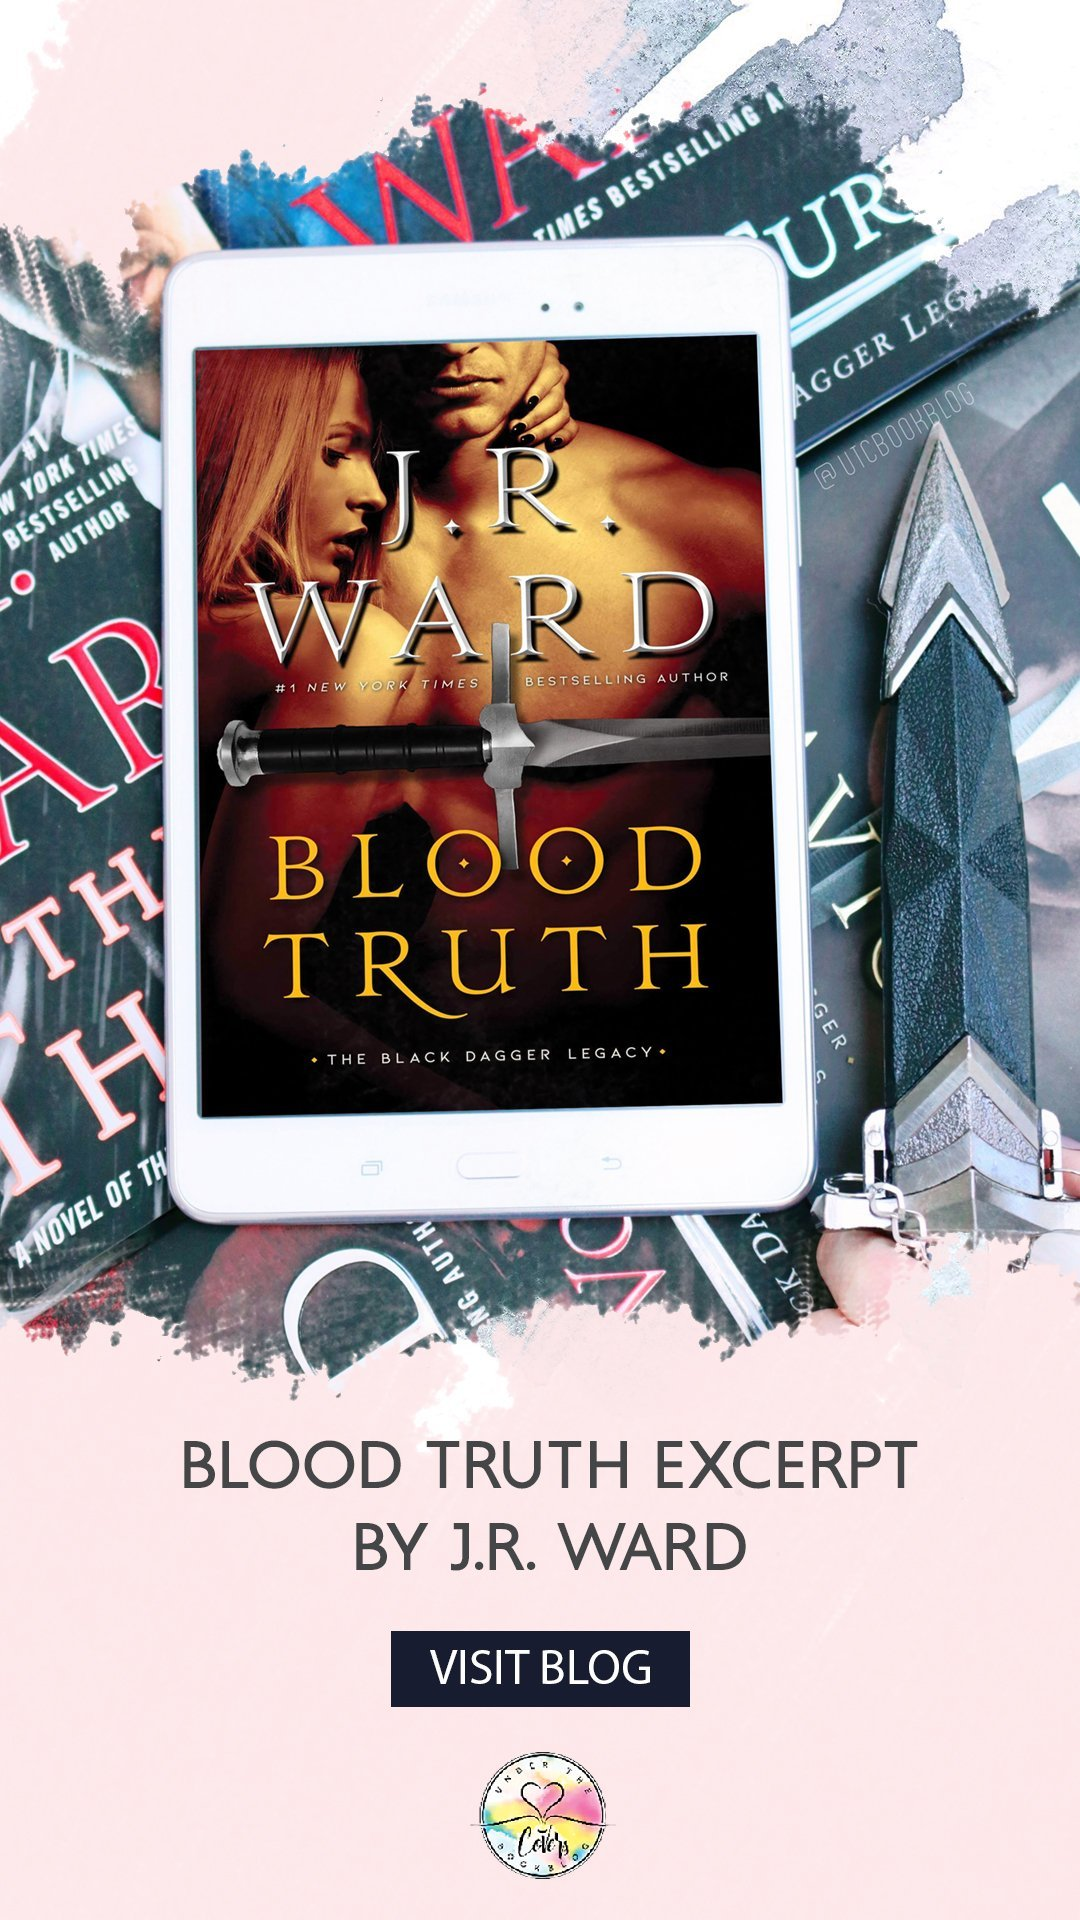 Excerpt from BLOOD TRUTH by J.R. Ward